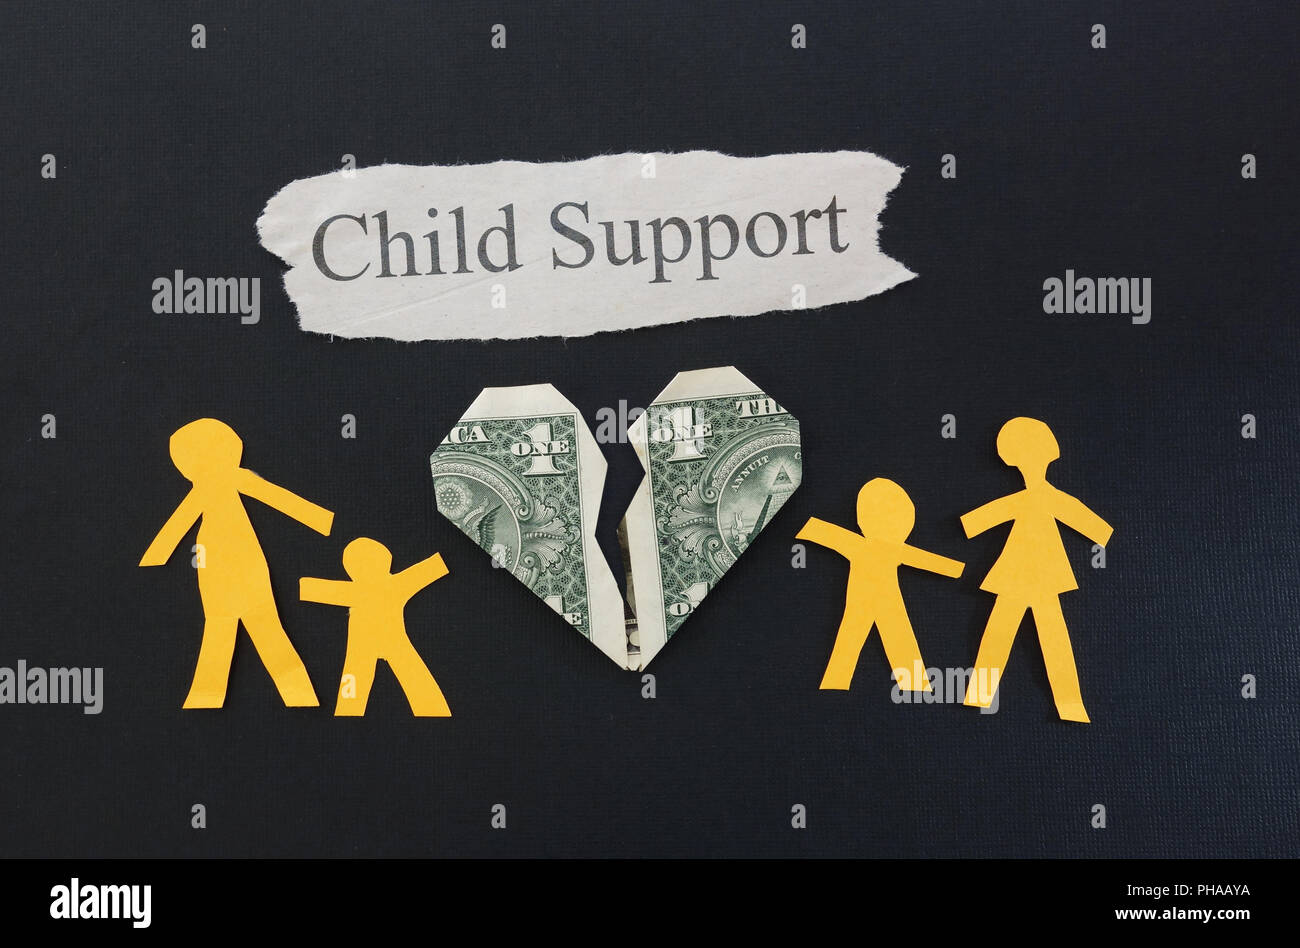 child support - Stock Image